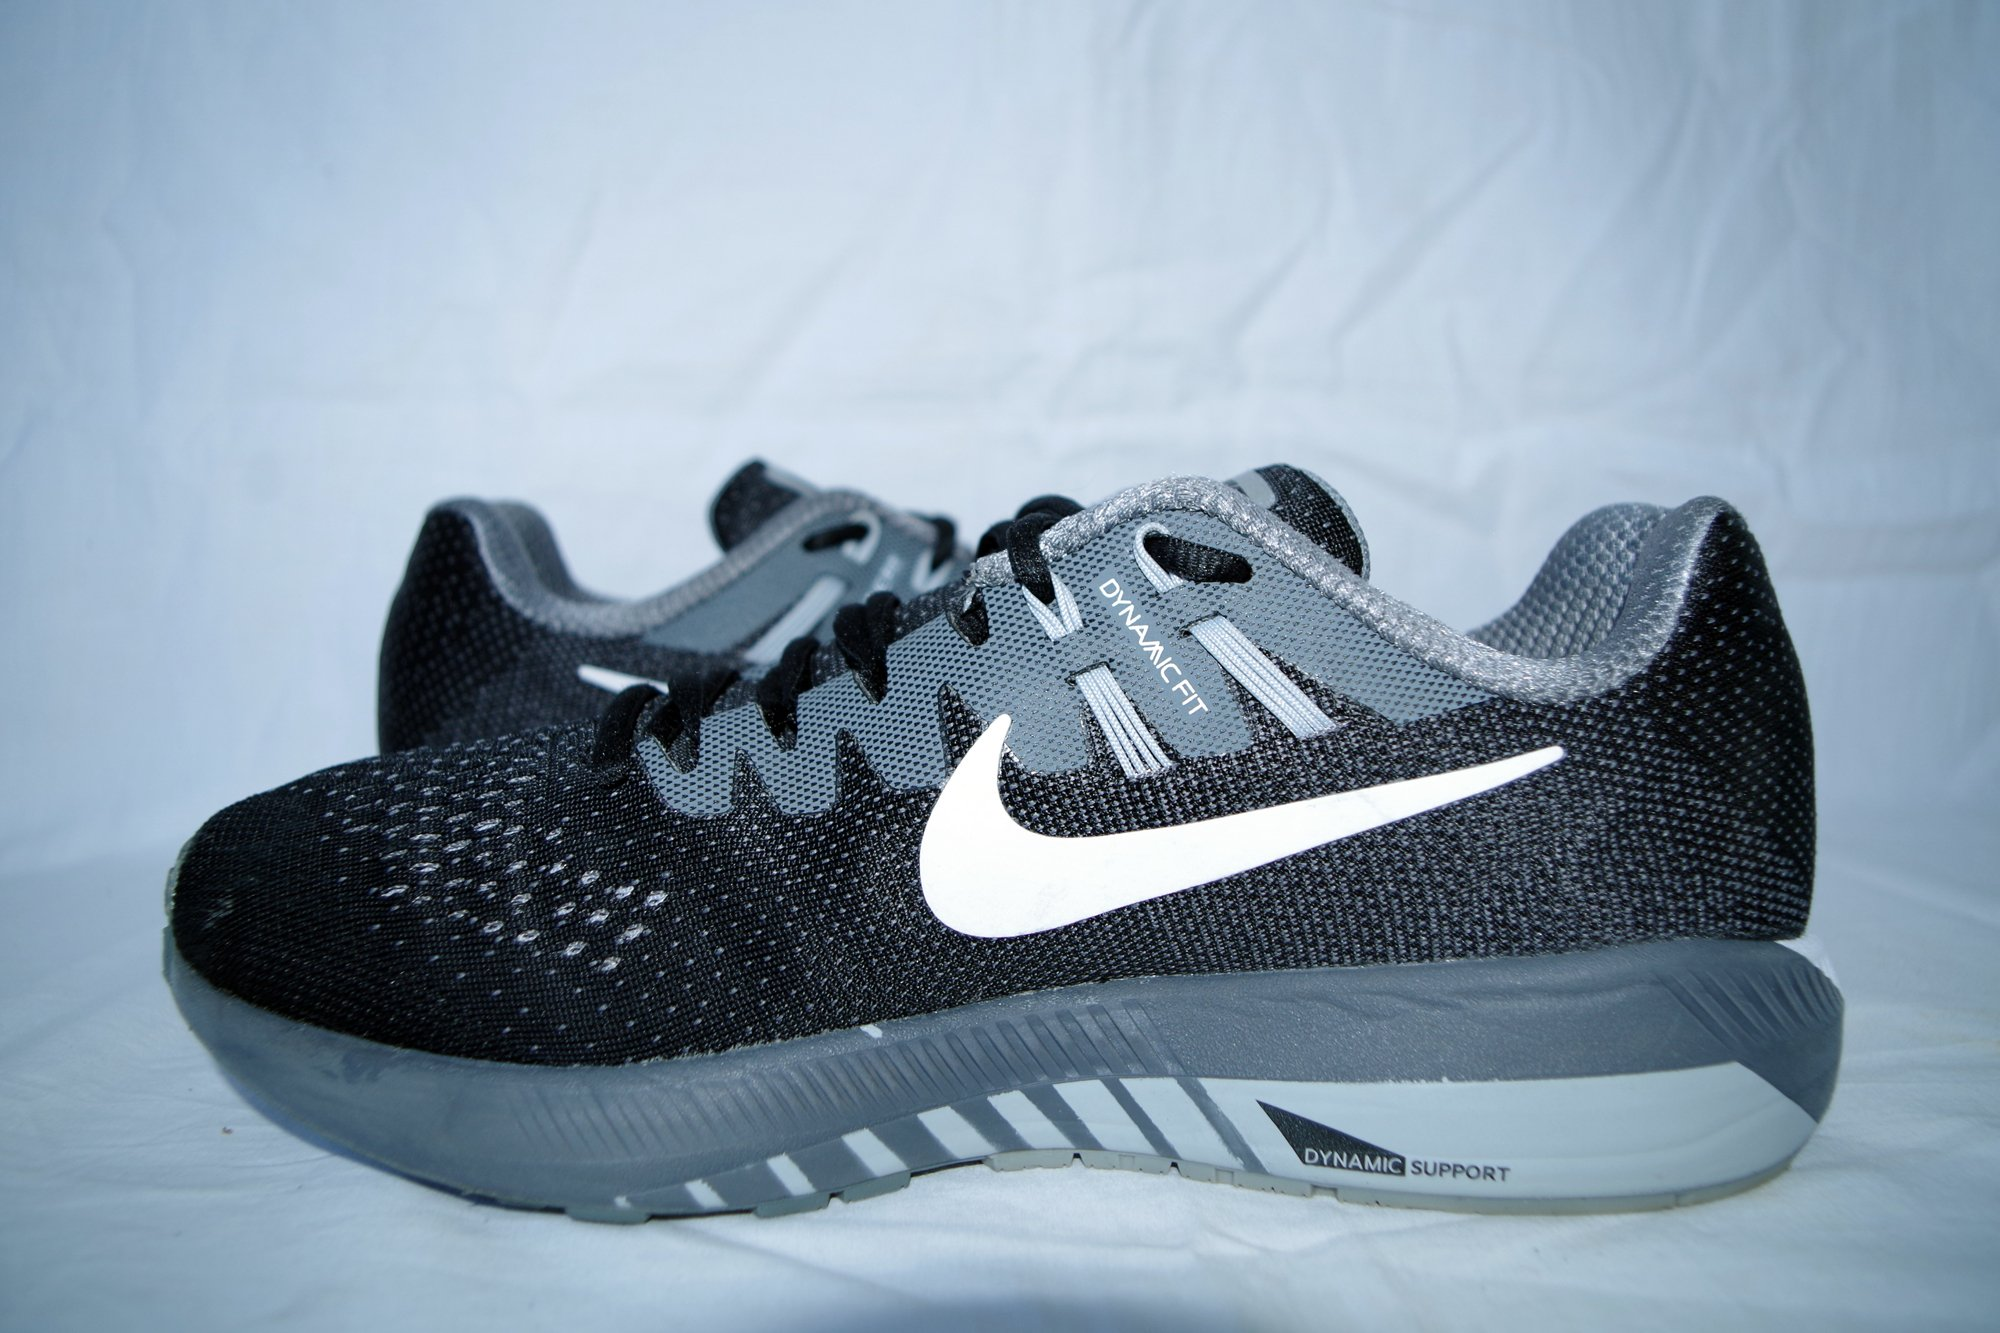 finest selection 47d64 5899f NIKE ZOOM STRUCTURE 20 buty do biegania 41 LUX (7388240989)